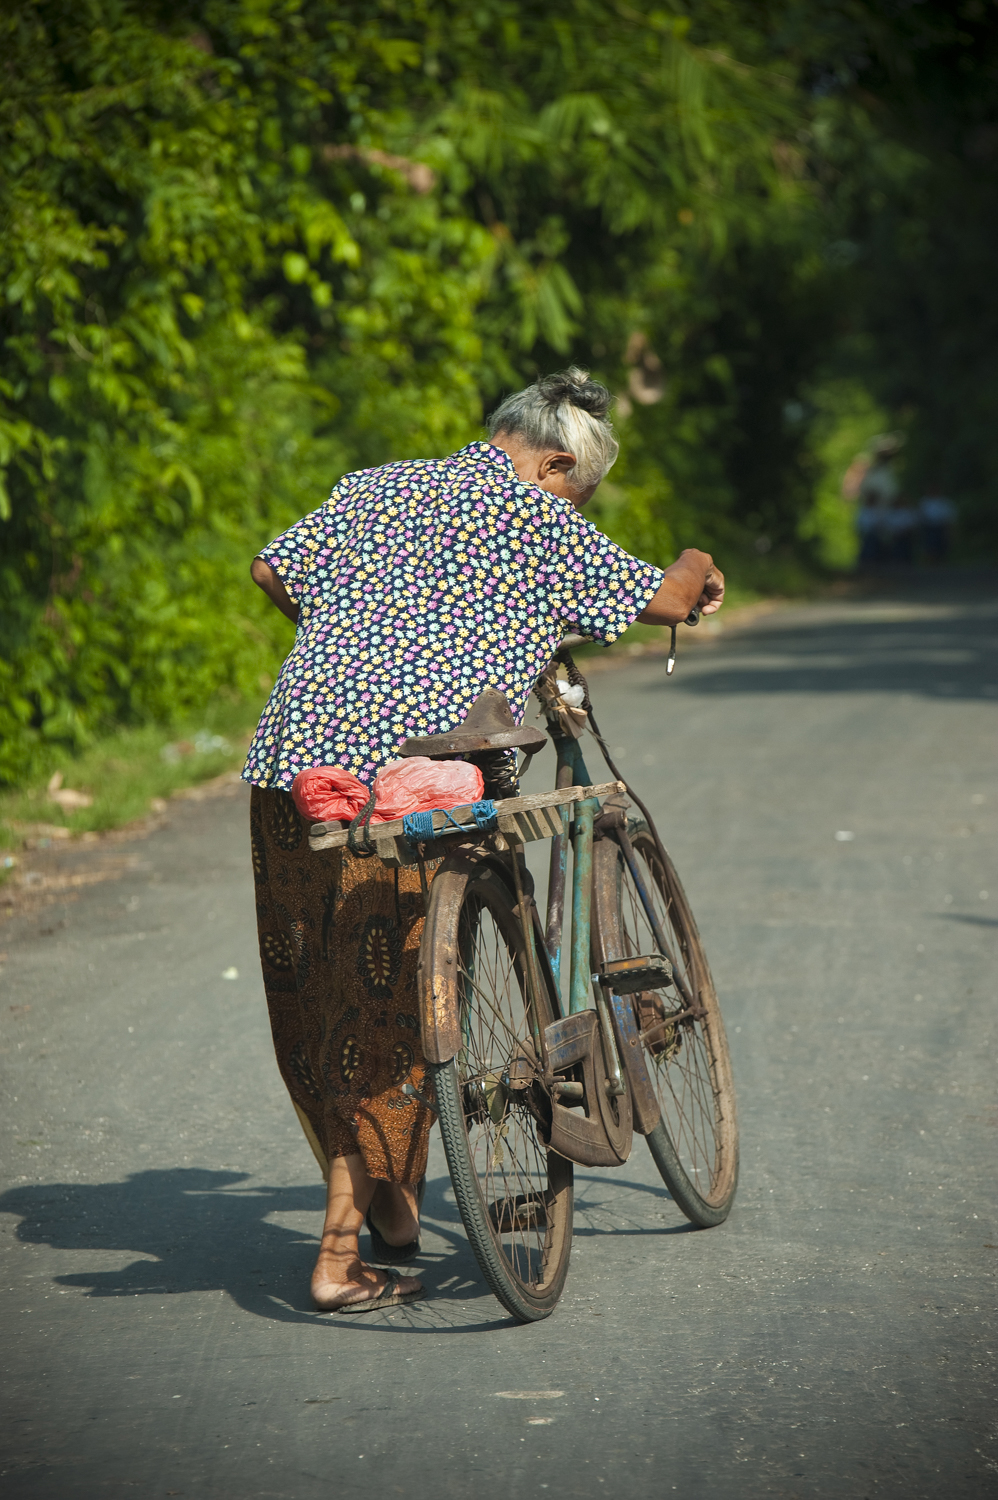 I also got a photo of this woman pushing her bike but prefered the 'fly on the wall' action photo. A longer lens has blurred the background to separate her from the trees.